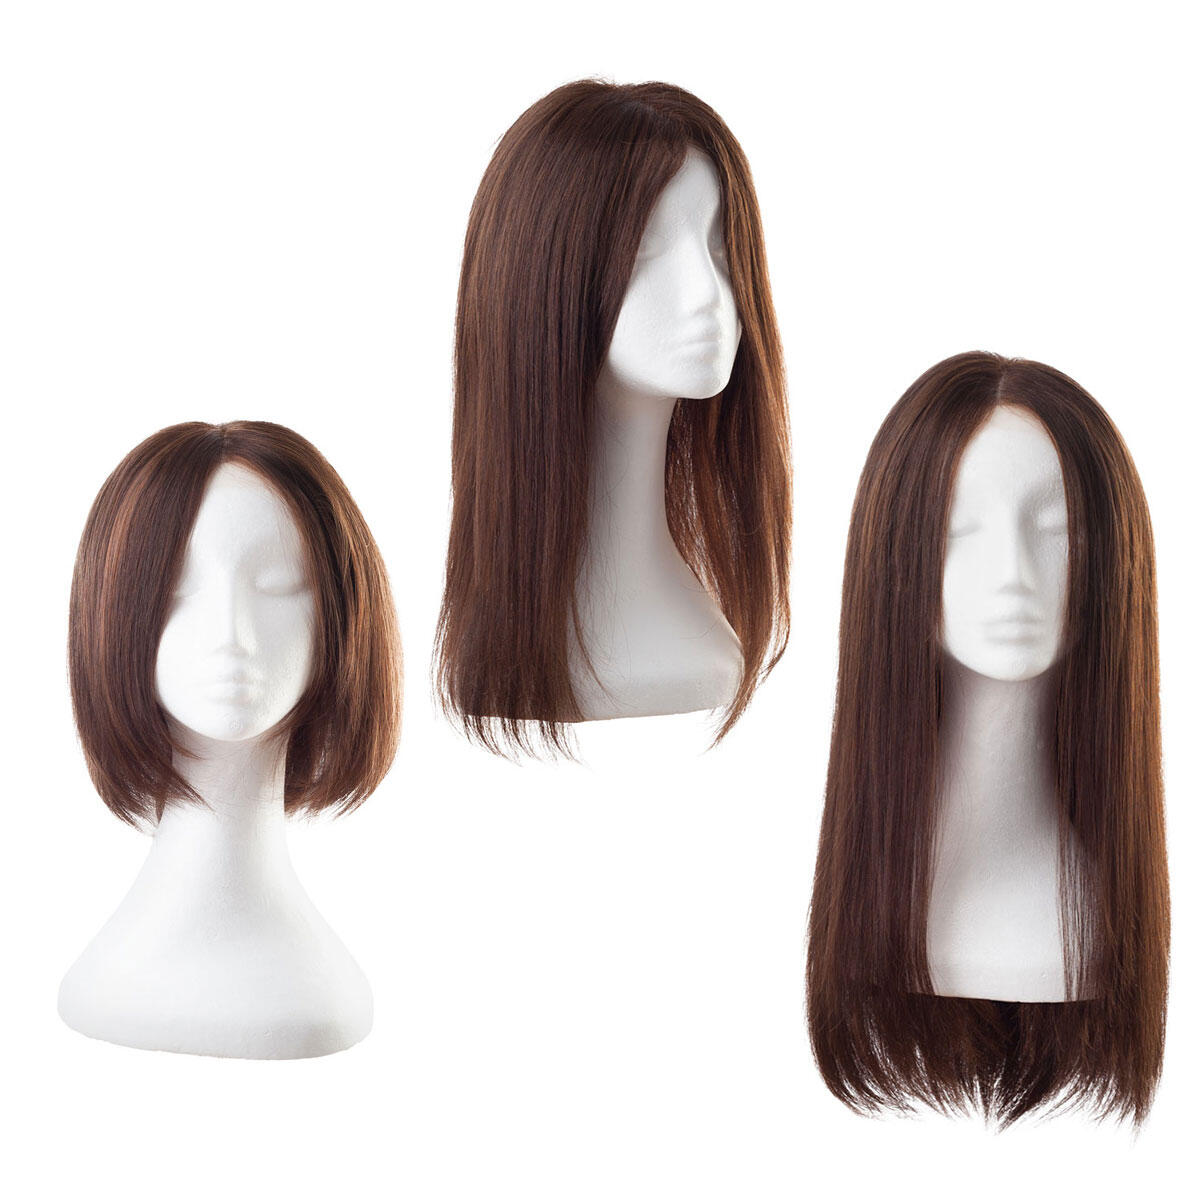 Lace Wig 2.3 Chocolate Brown 55 cm